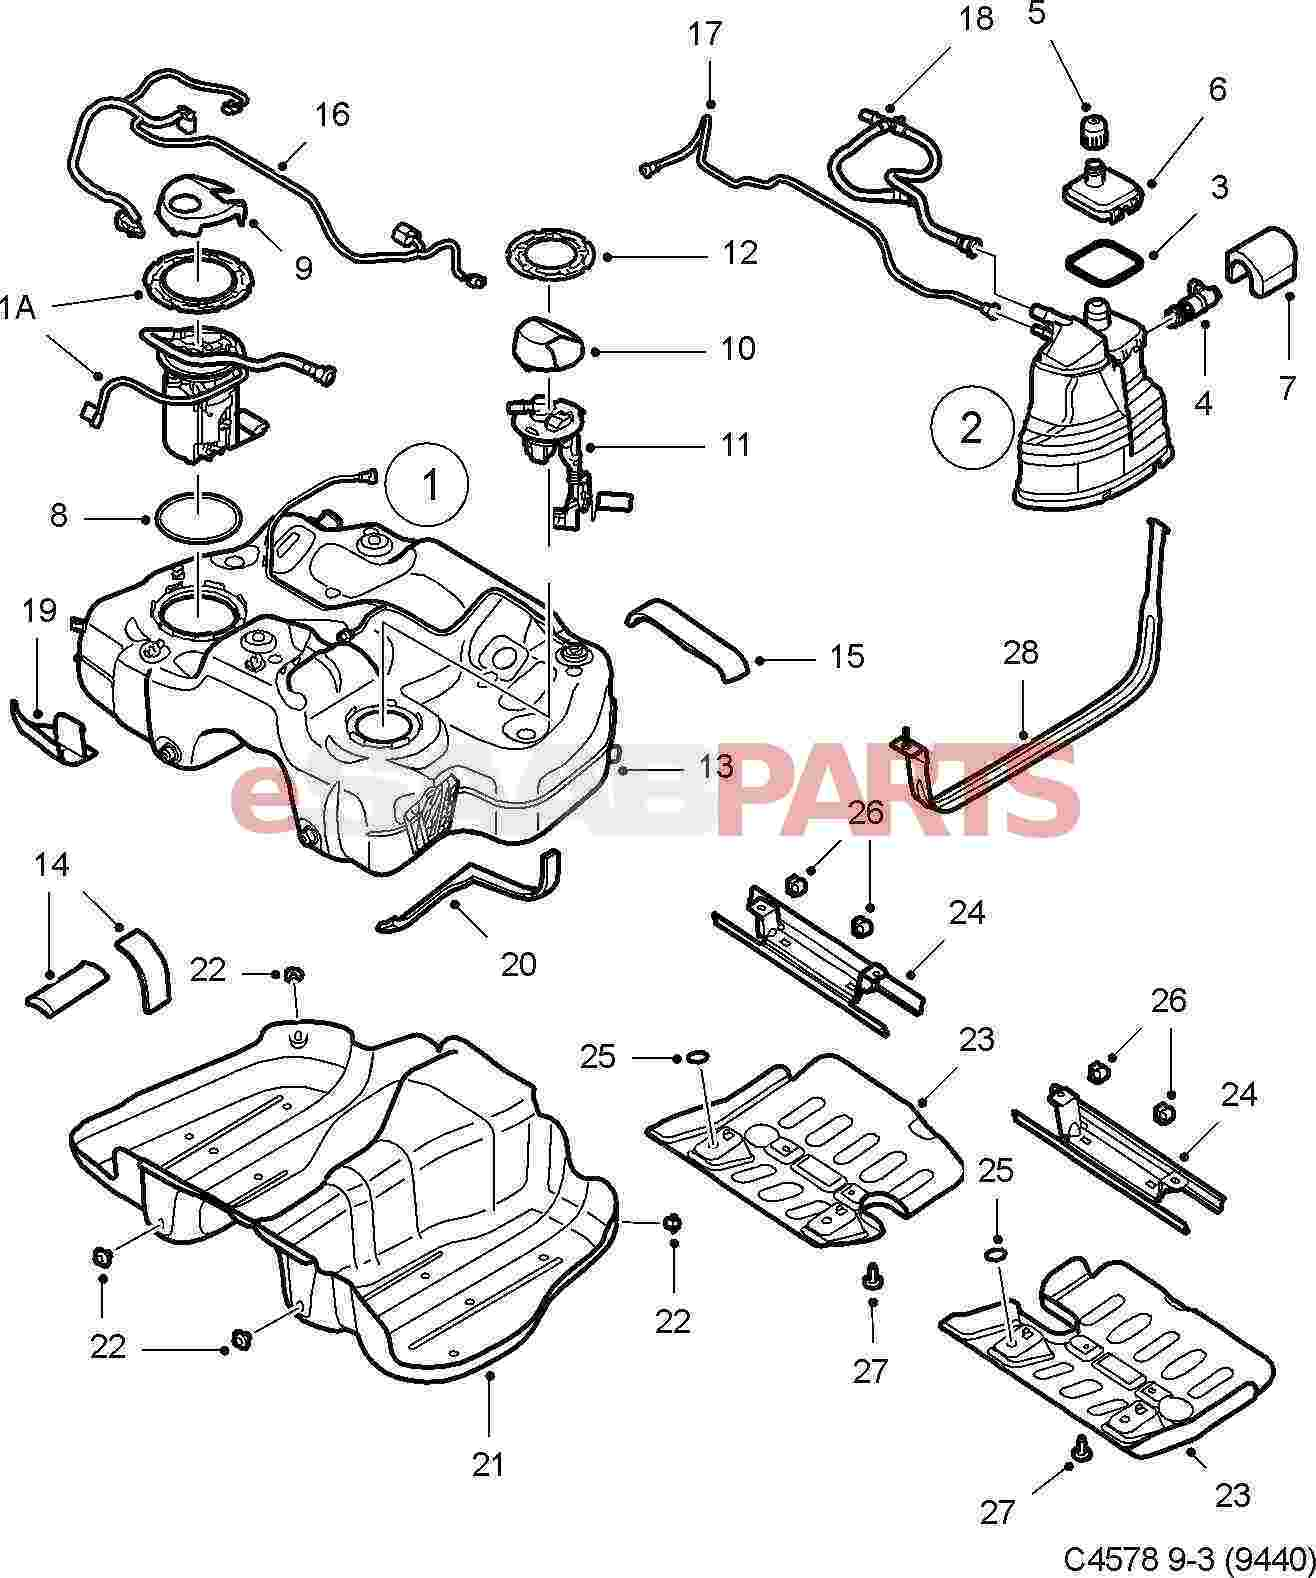 eSaabParts.com - Saab 9-3 (9440) > Engine Parts > Fuel System > Fuel Tank ( 2.0T XWD)